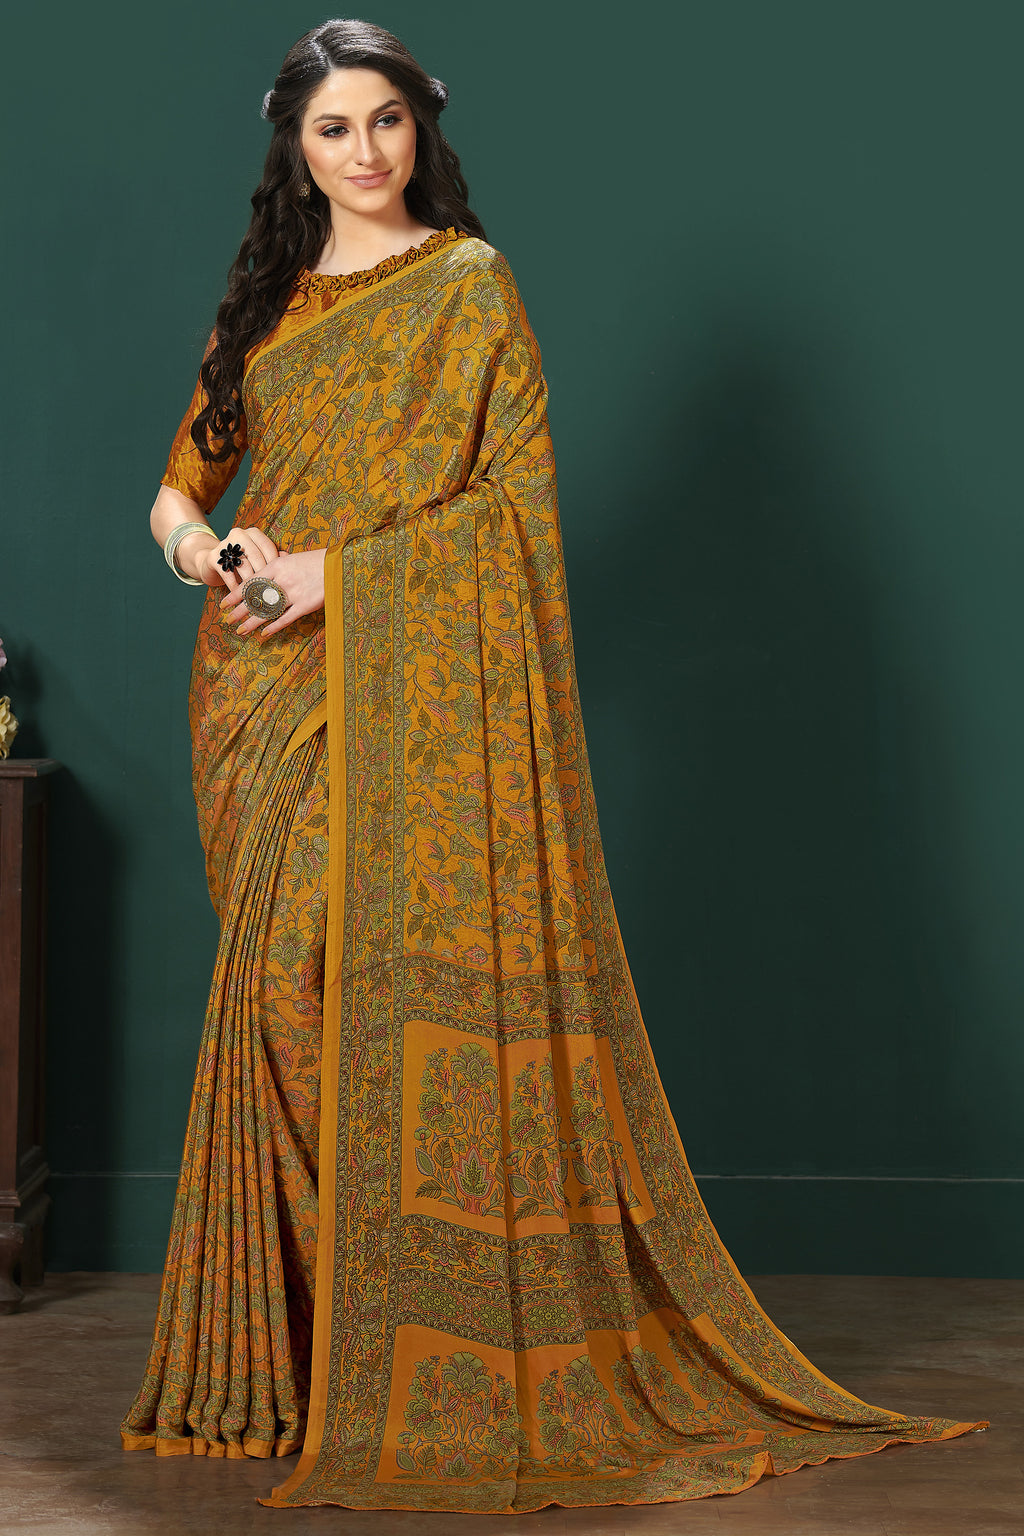 Mustard Yellow Color Crepe  Digital Print Kitty Party Sarees NYF-8119